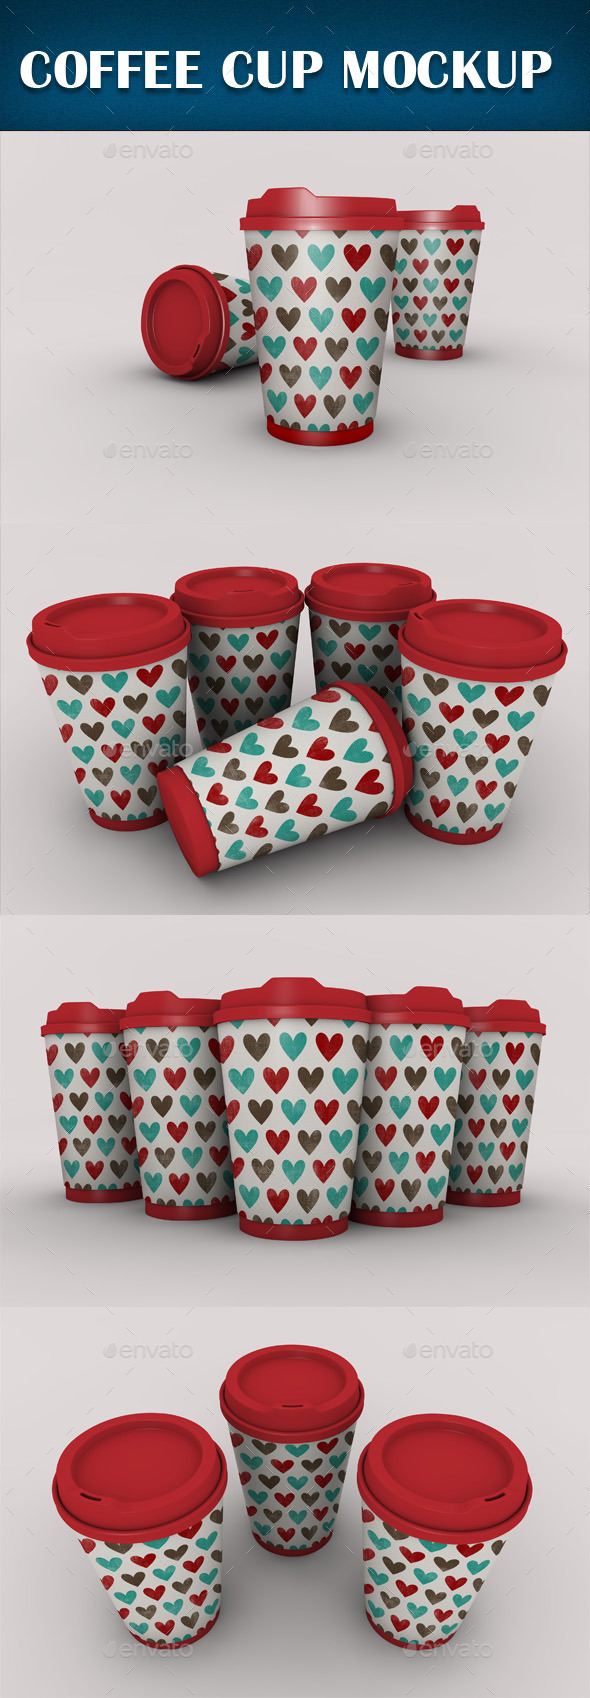 Coffee Cup Mockup - Product Mock-Ups Graphics